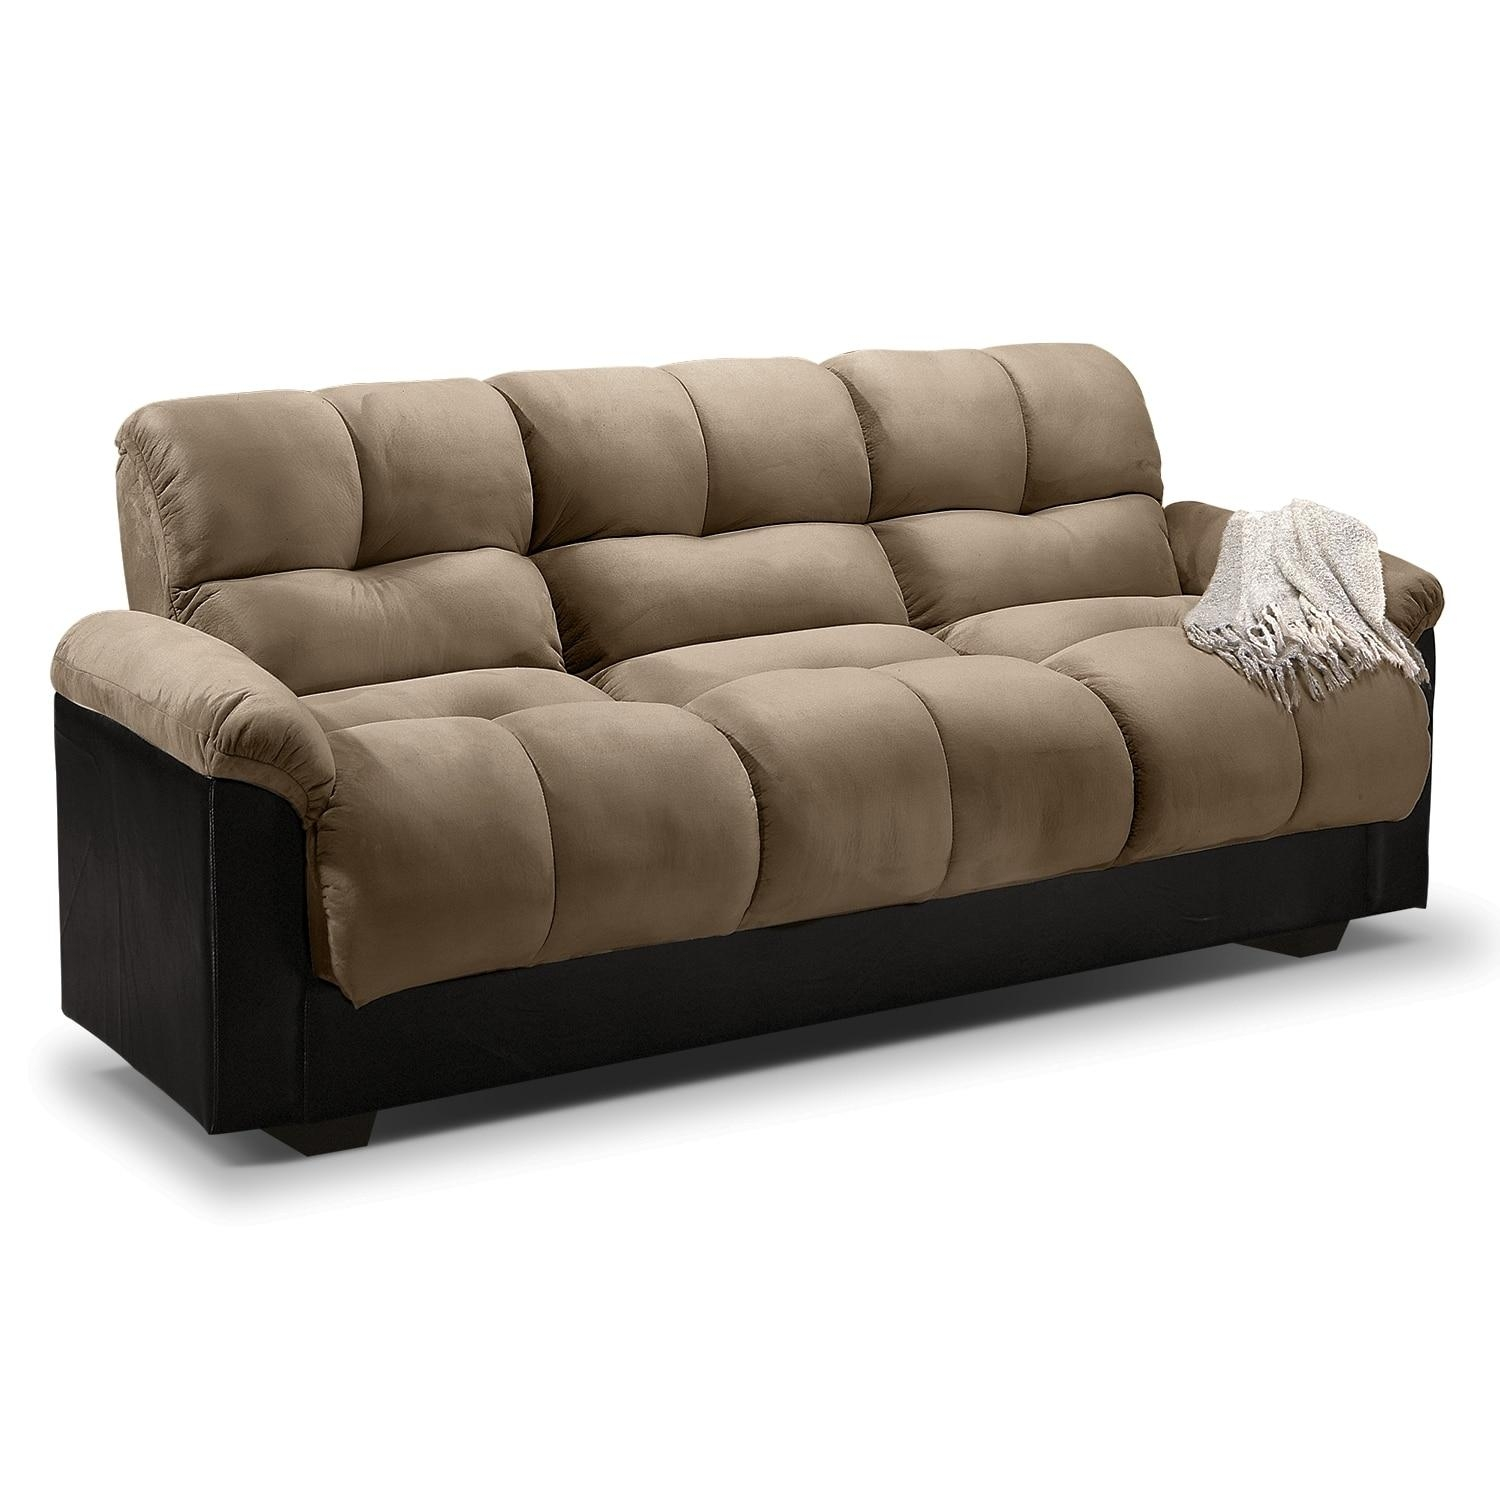 Featured Image of Fulton Sofa Beds